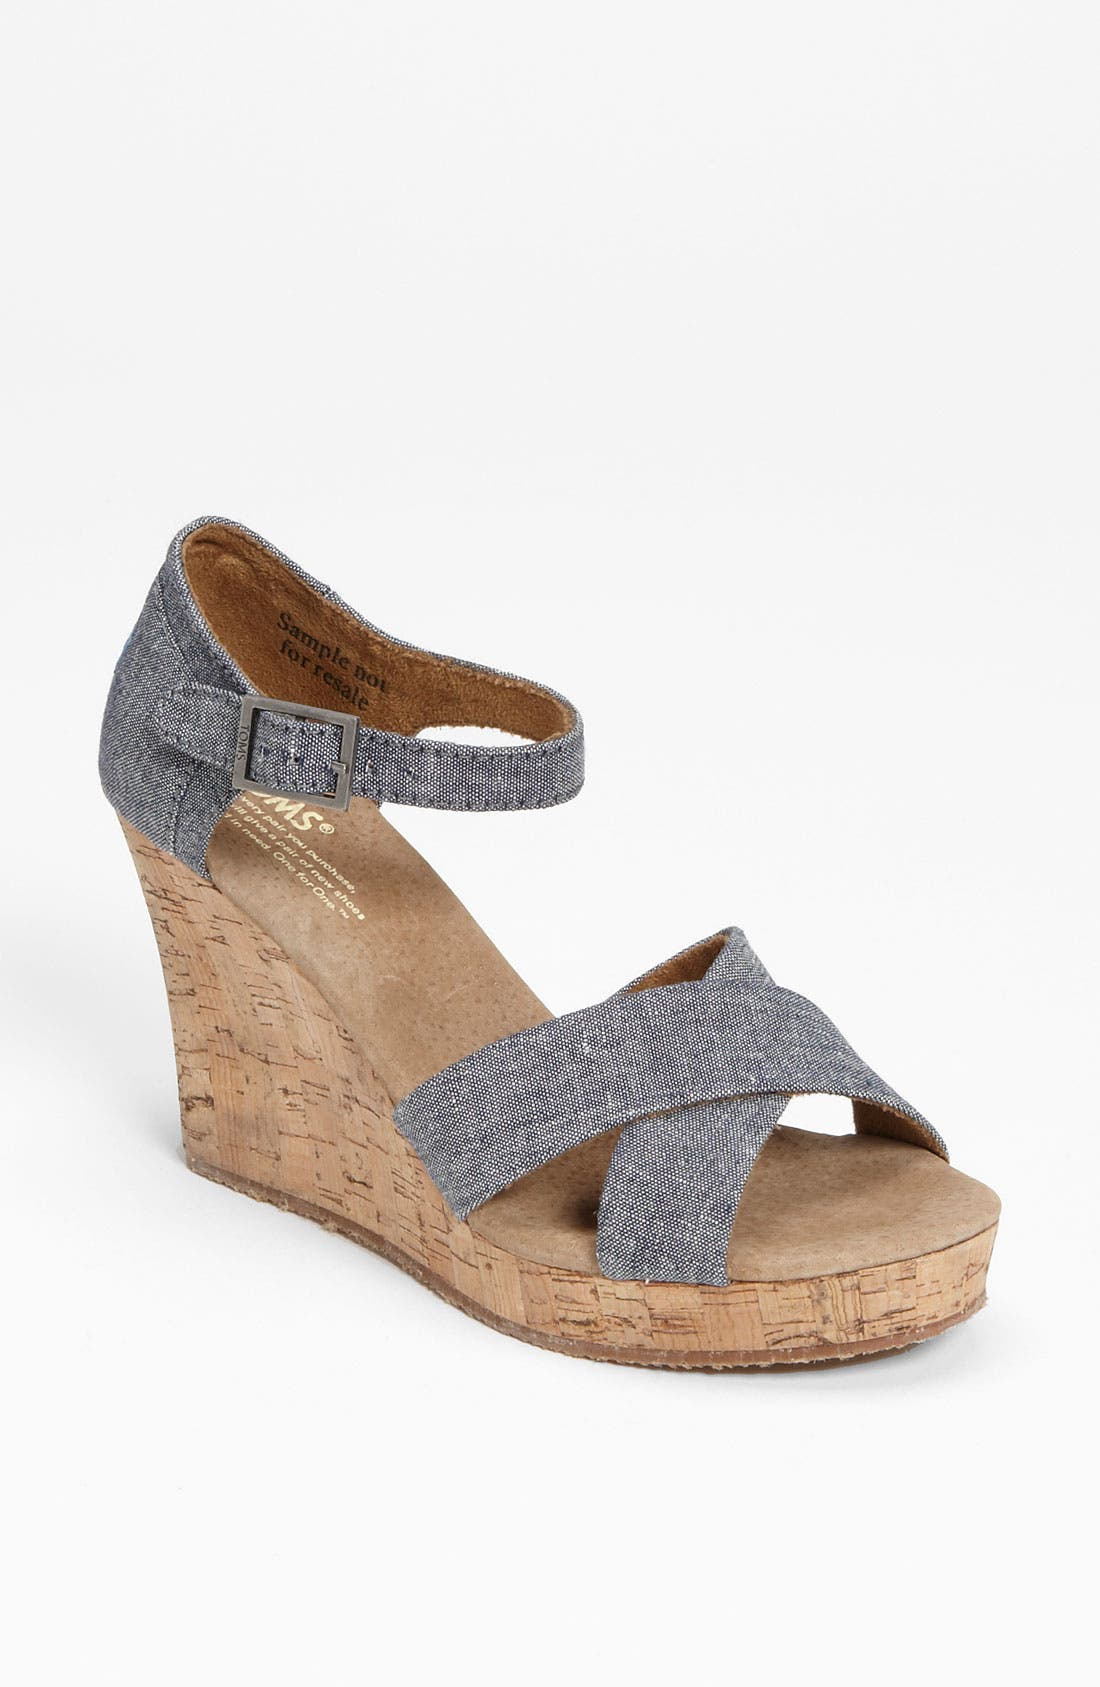 Alternate Image 1 Selected - TOMS 'Sofie' Sandal